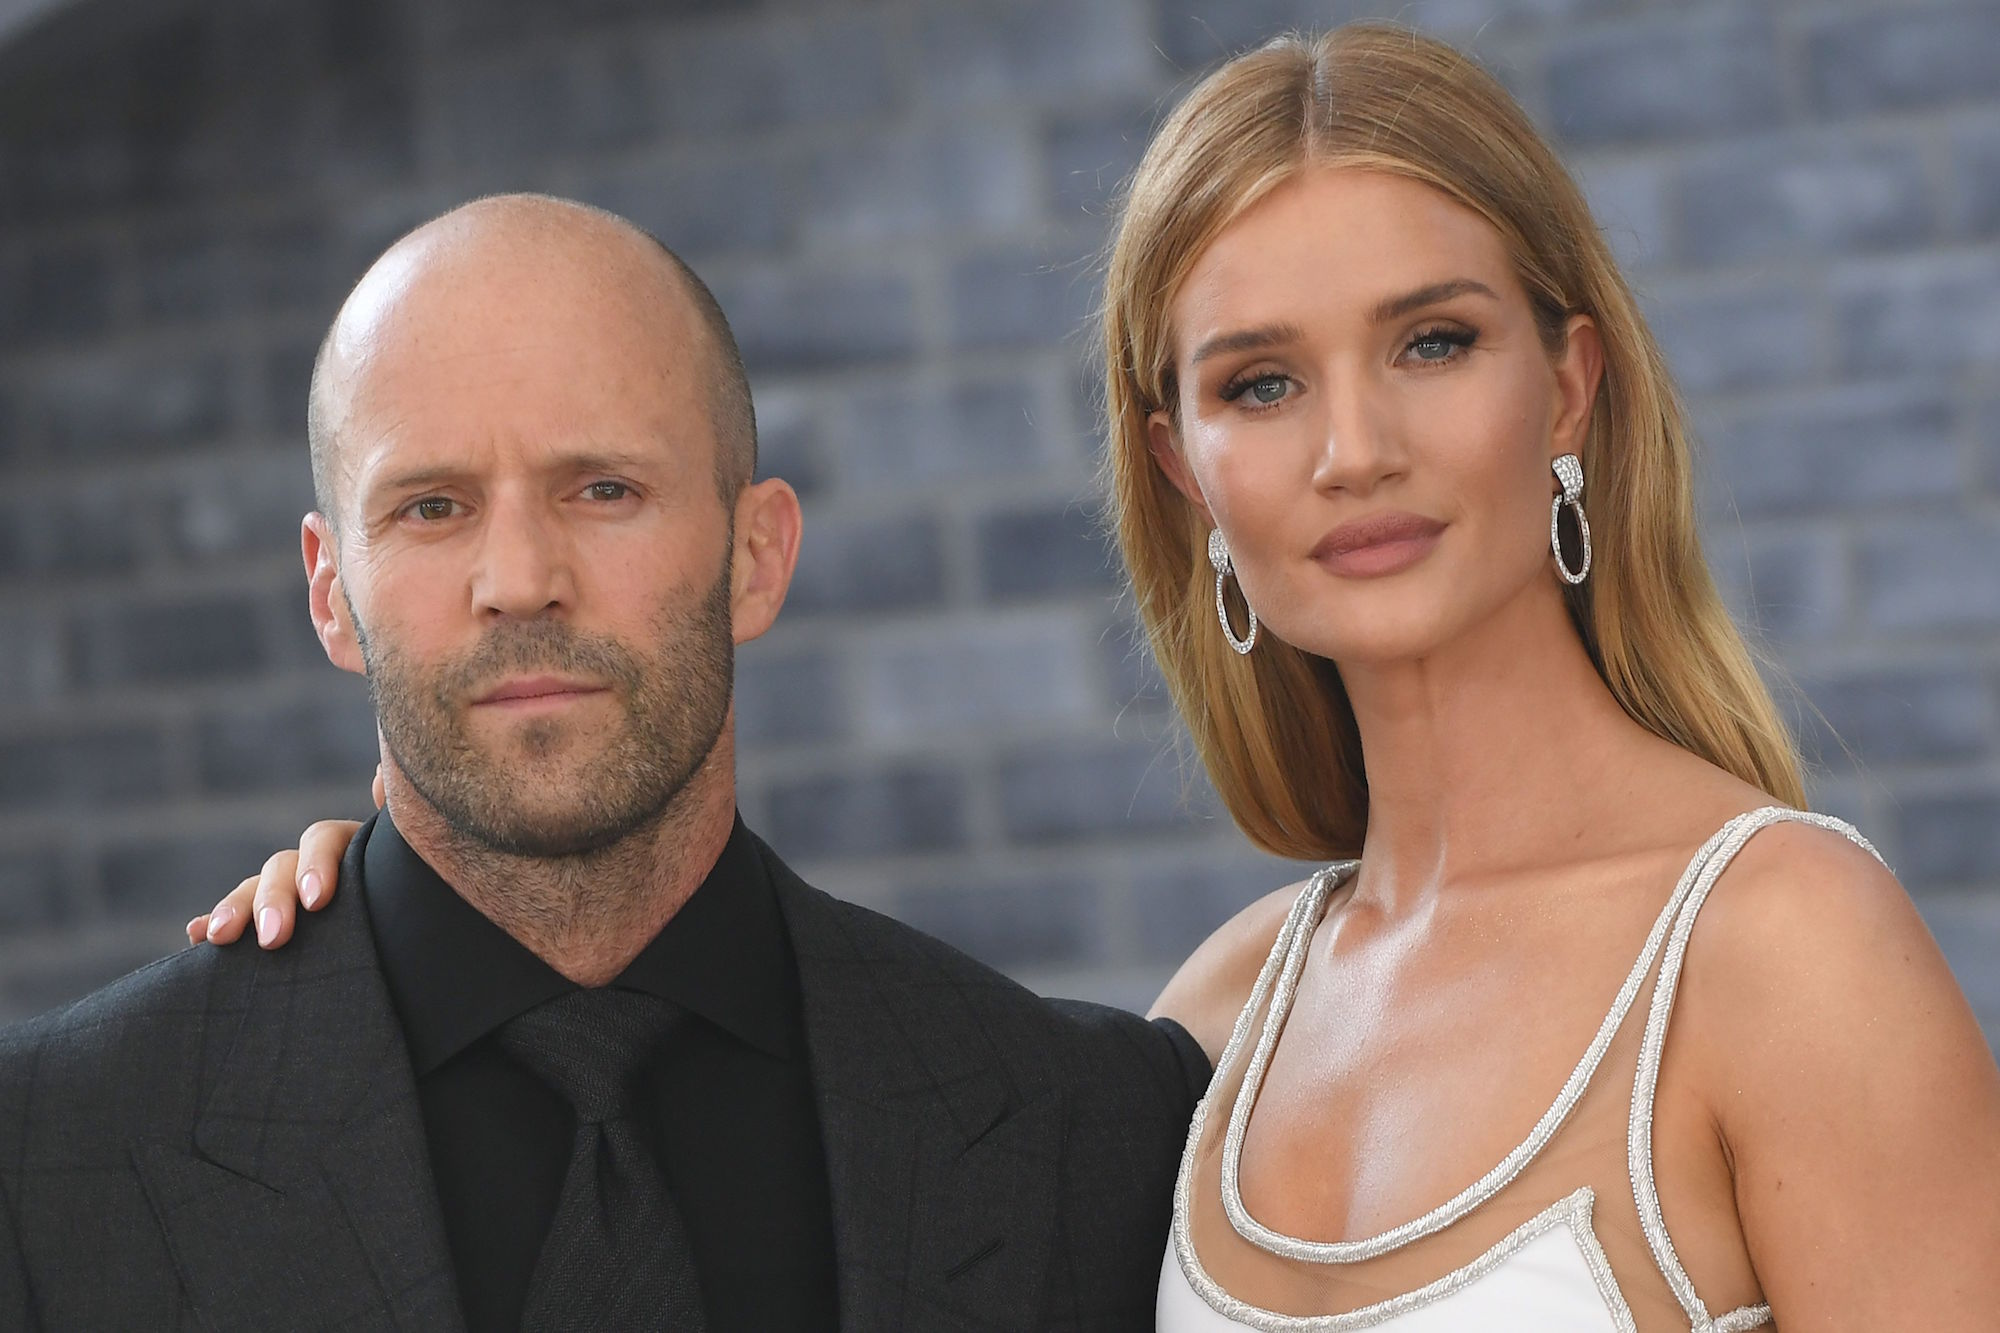 Did Jason Statham And Rosie Huntington Whiteley Secretly Tie The Knot